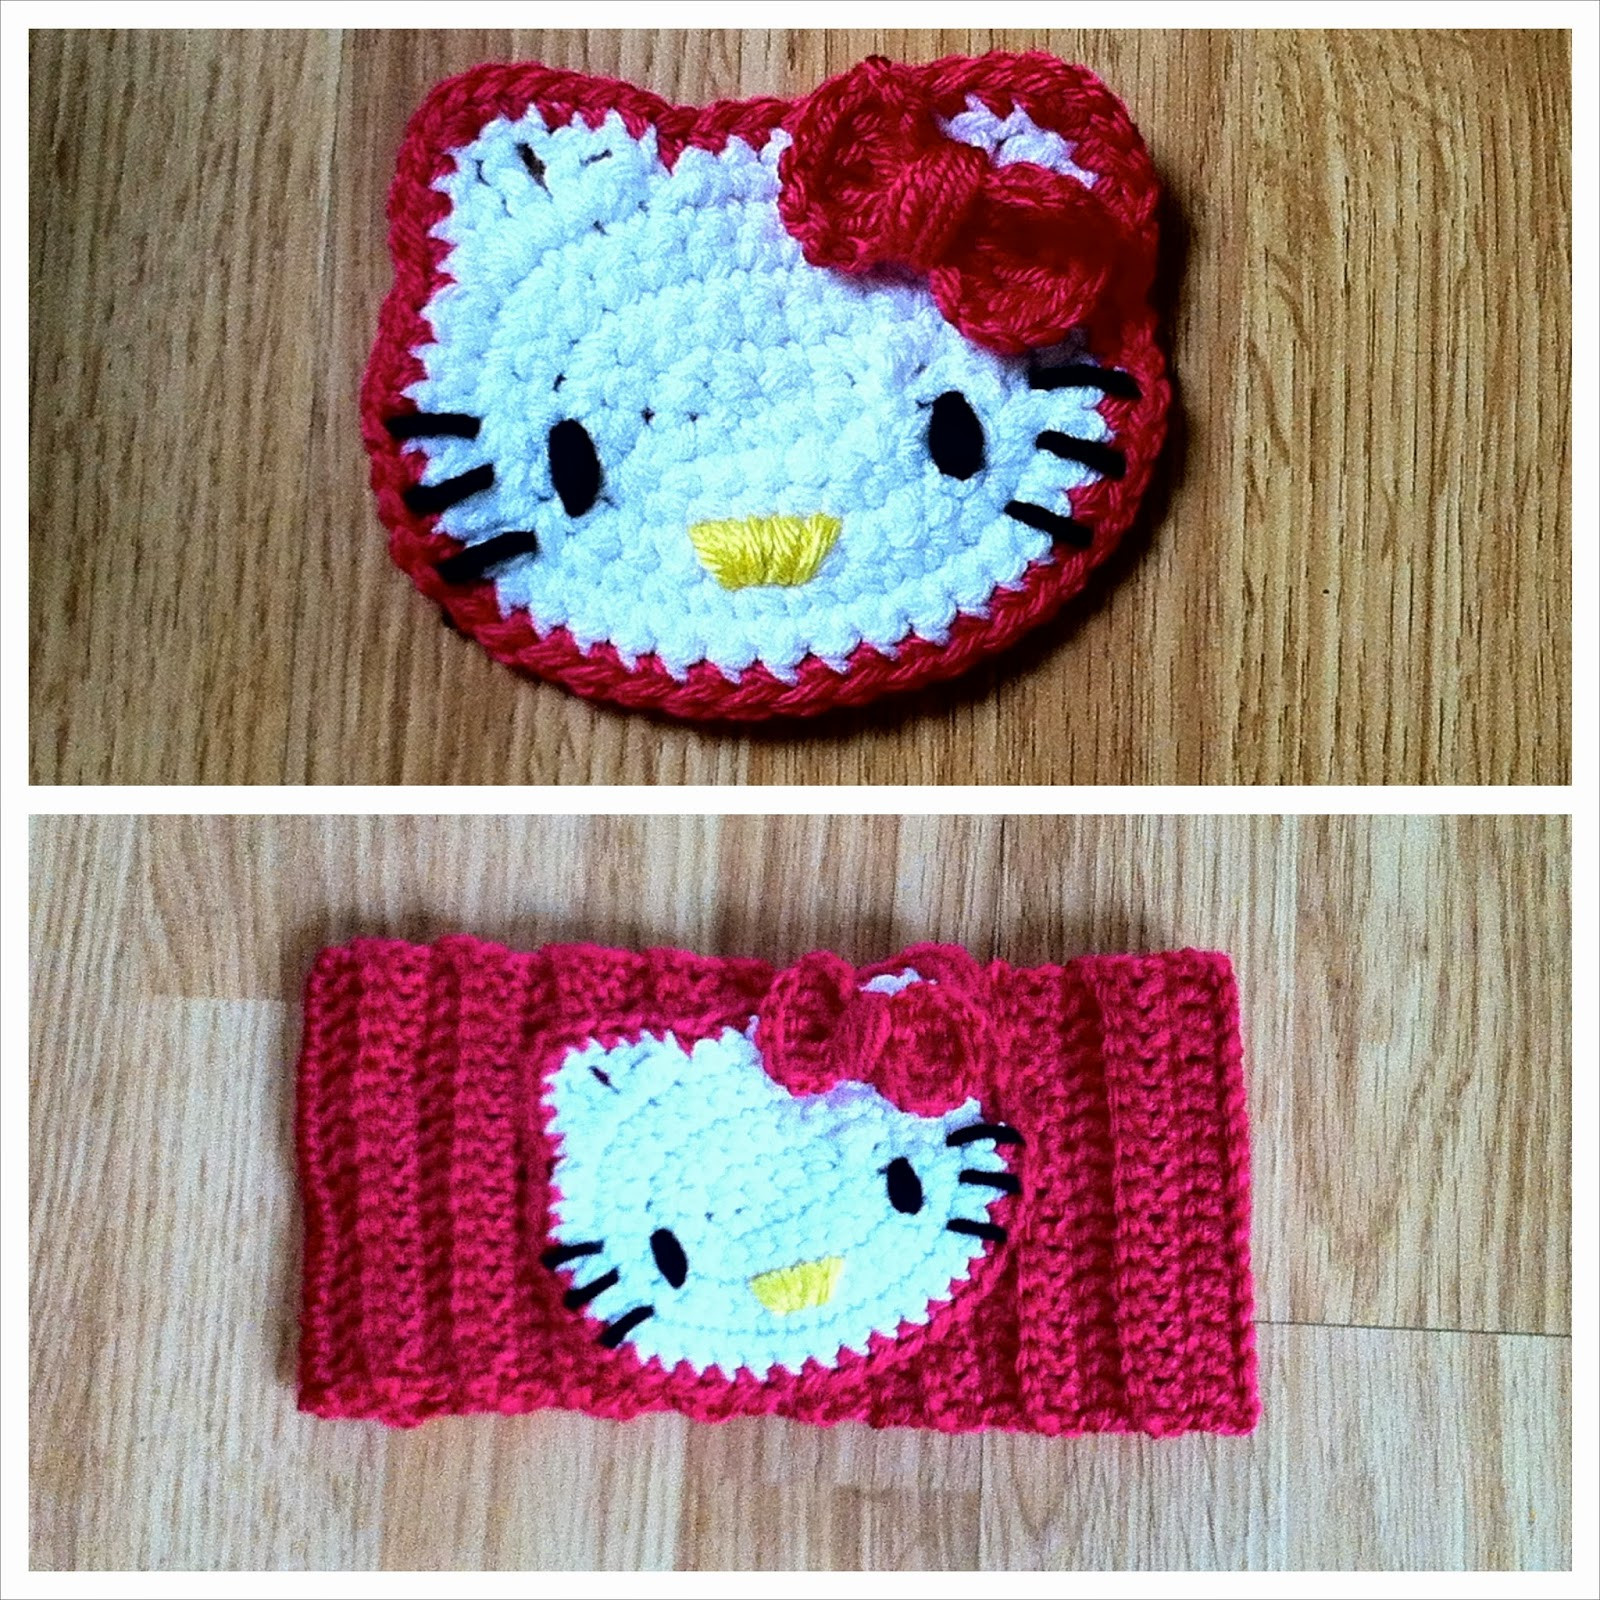 Unique the Way I Crochet Hello Kitty Crochet Headband Hello Kitty Crochet Pattern Of Luxury 47 Images Hello Kitty Crochet Pattern